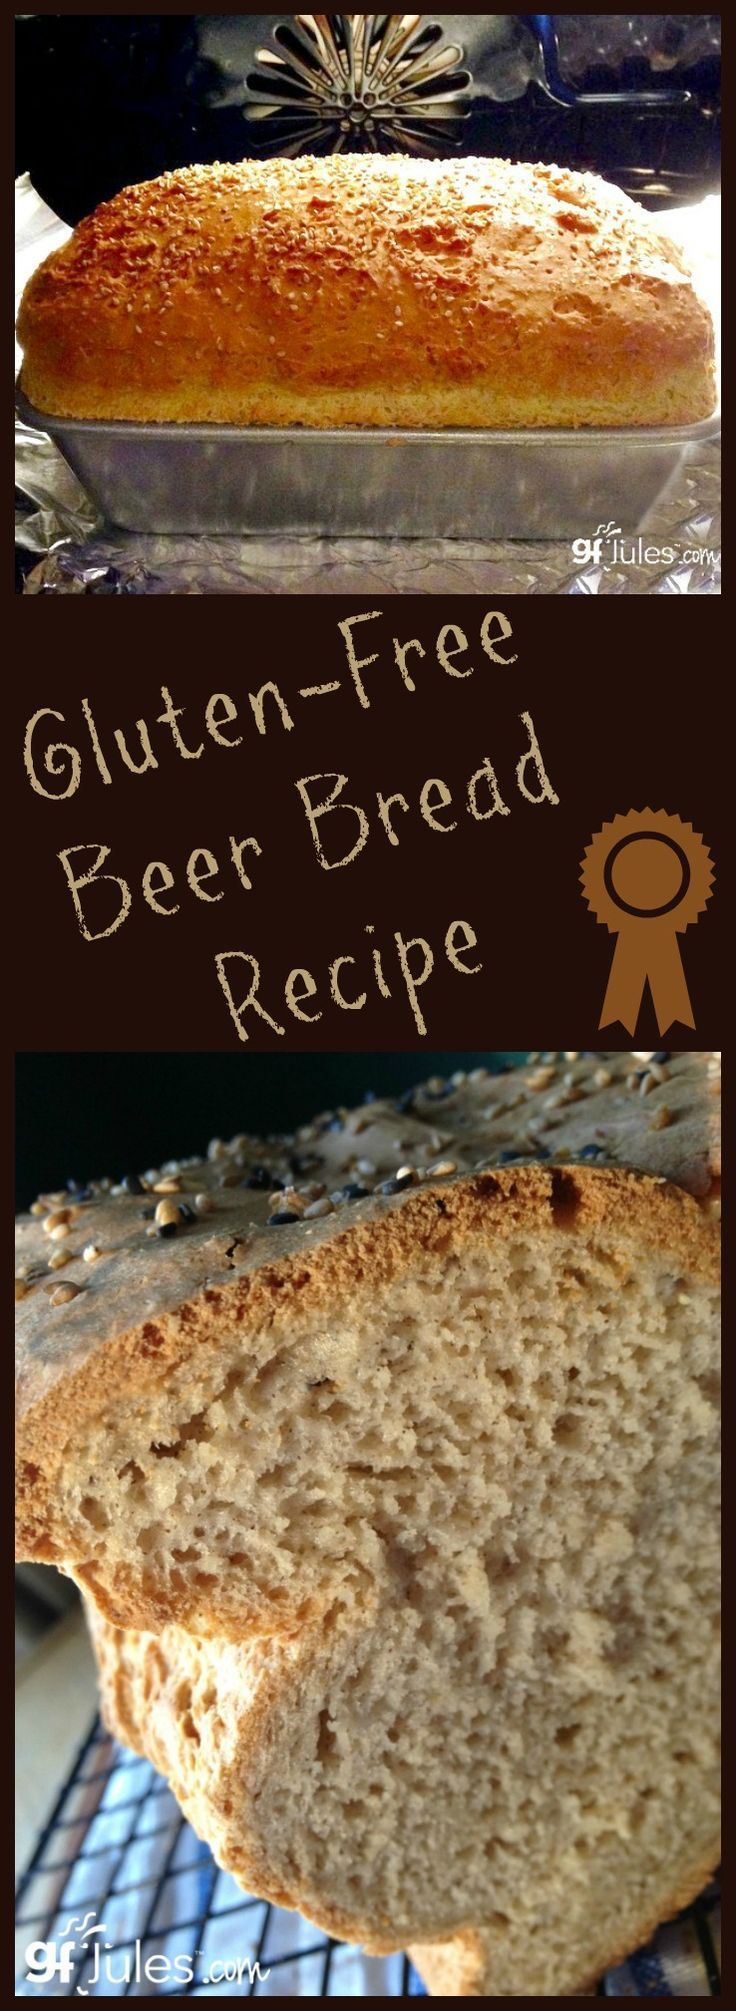 Gluten Free Beer Bread - this recipe makes soft, light and airy bread no one will believe is gluten-free and dairy-free! Use gingerale for alchol-free baking option.